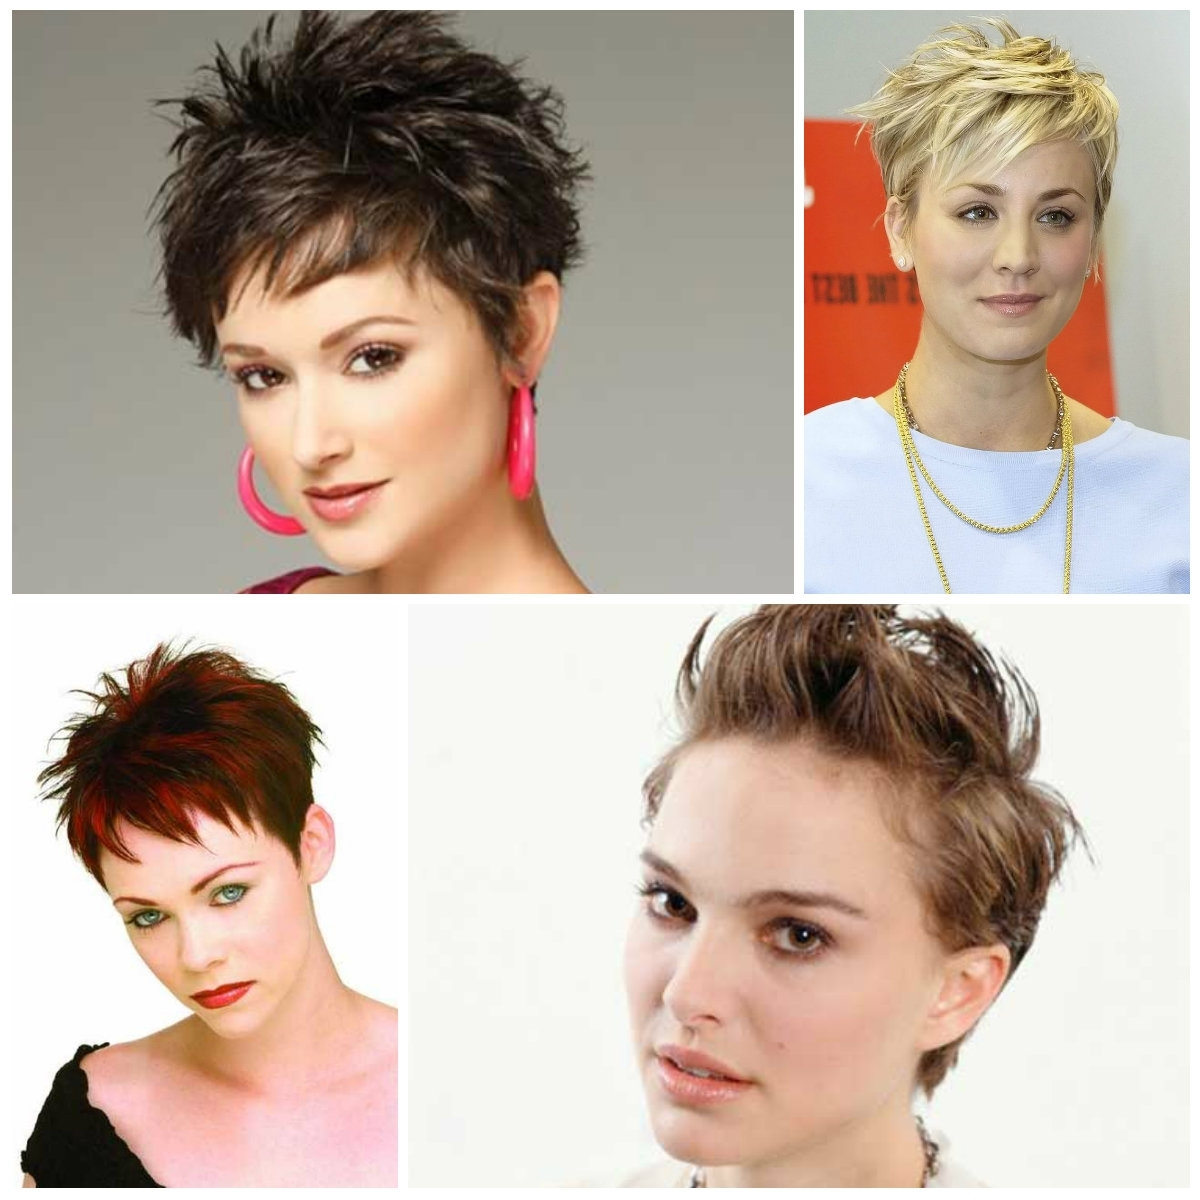 Pixie Hairstyles For 2017 – Hairstyles Ideas For Latest Pixie Hairstyles With Short Bangs (View 10 of 15)